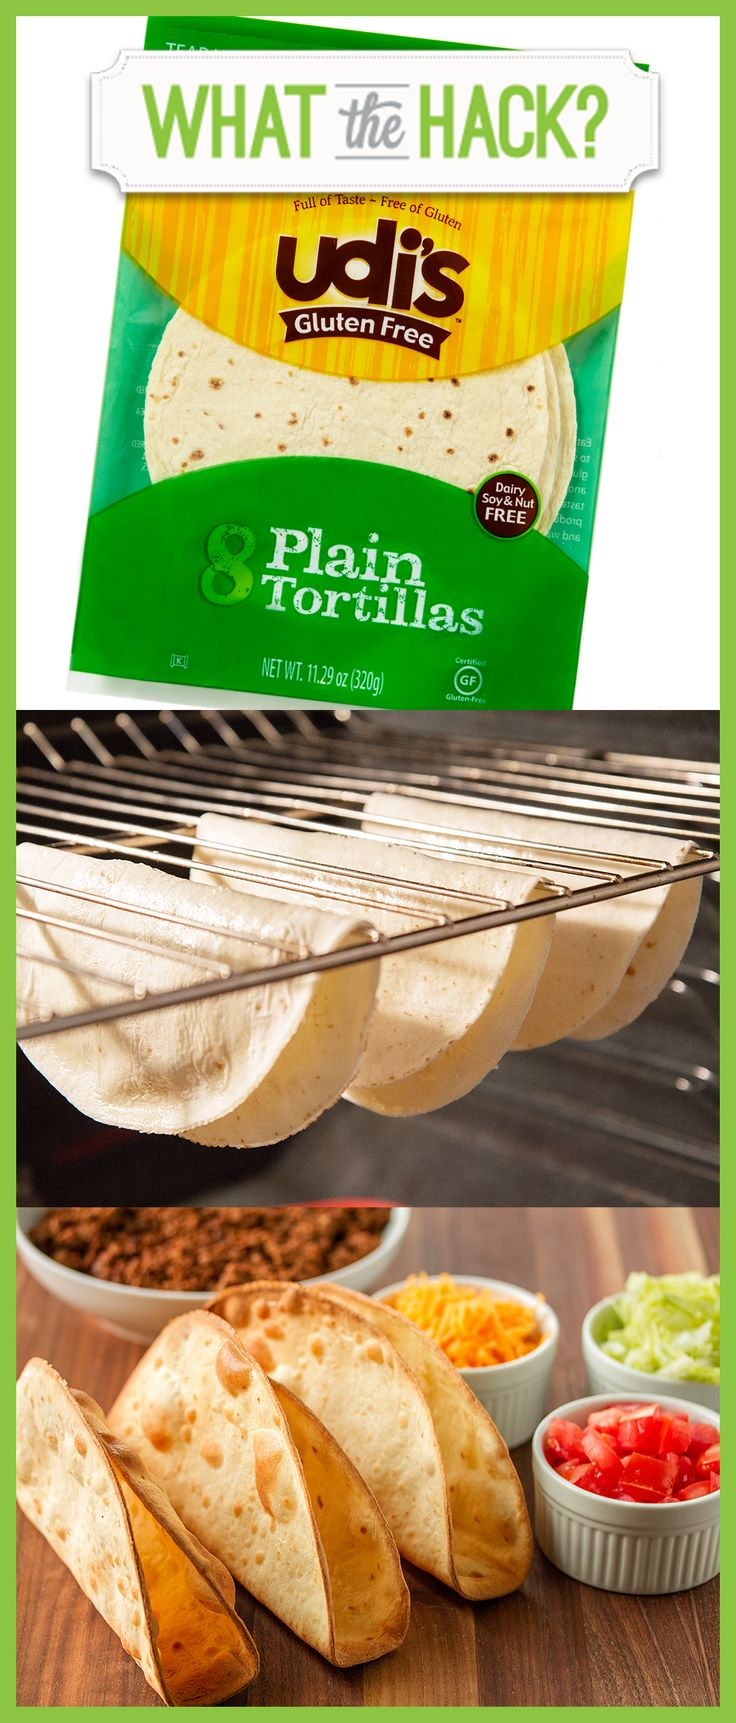 Make your own crispy #glutenfree taco shells with Udi's tortillas! #WhatTheHack: Gluten Recipes, Glutenfree Recipes, Awesome Hacks, Tacos Shells, Recipes Healthy, Healthy Recipes, Recipes Glutenfree, Glutenfree Tacos, Taco Shells